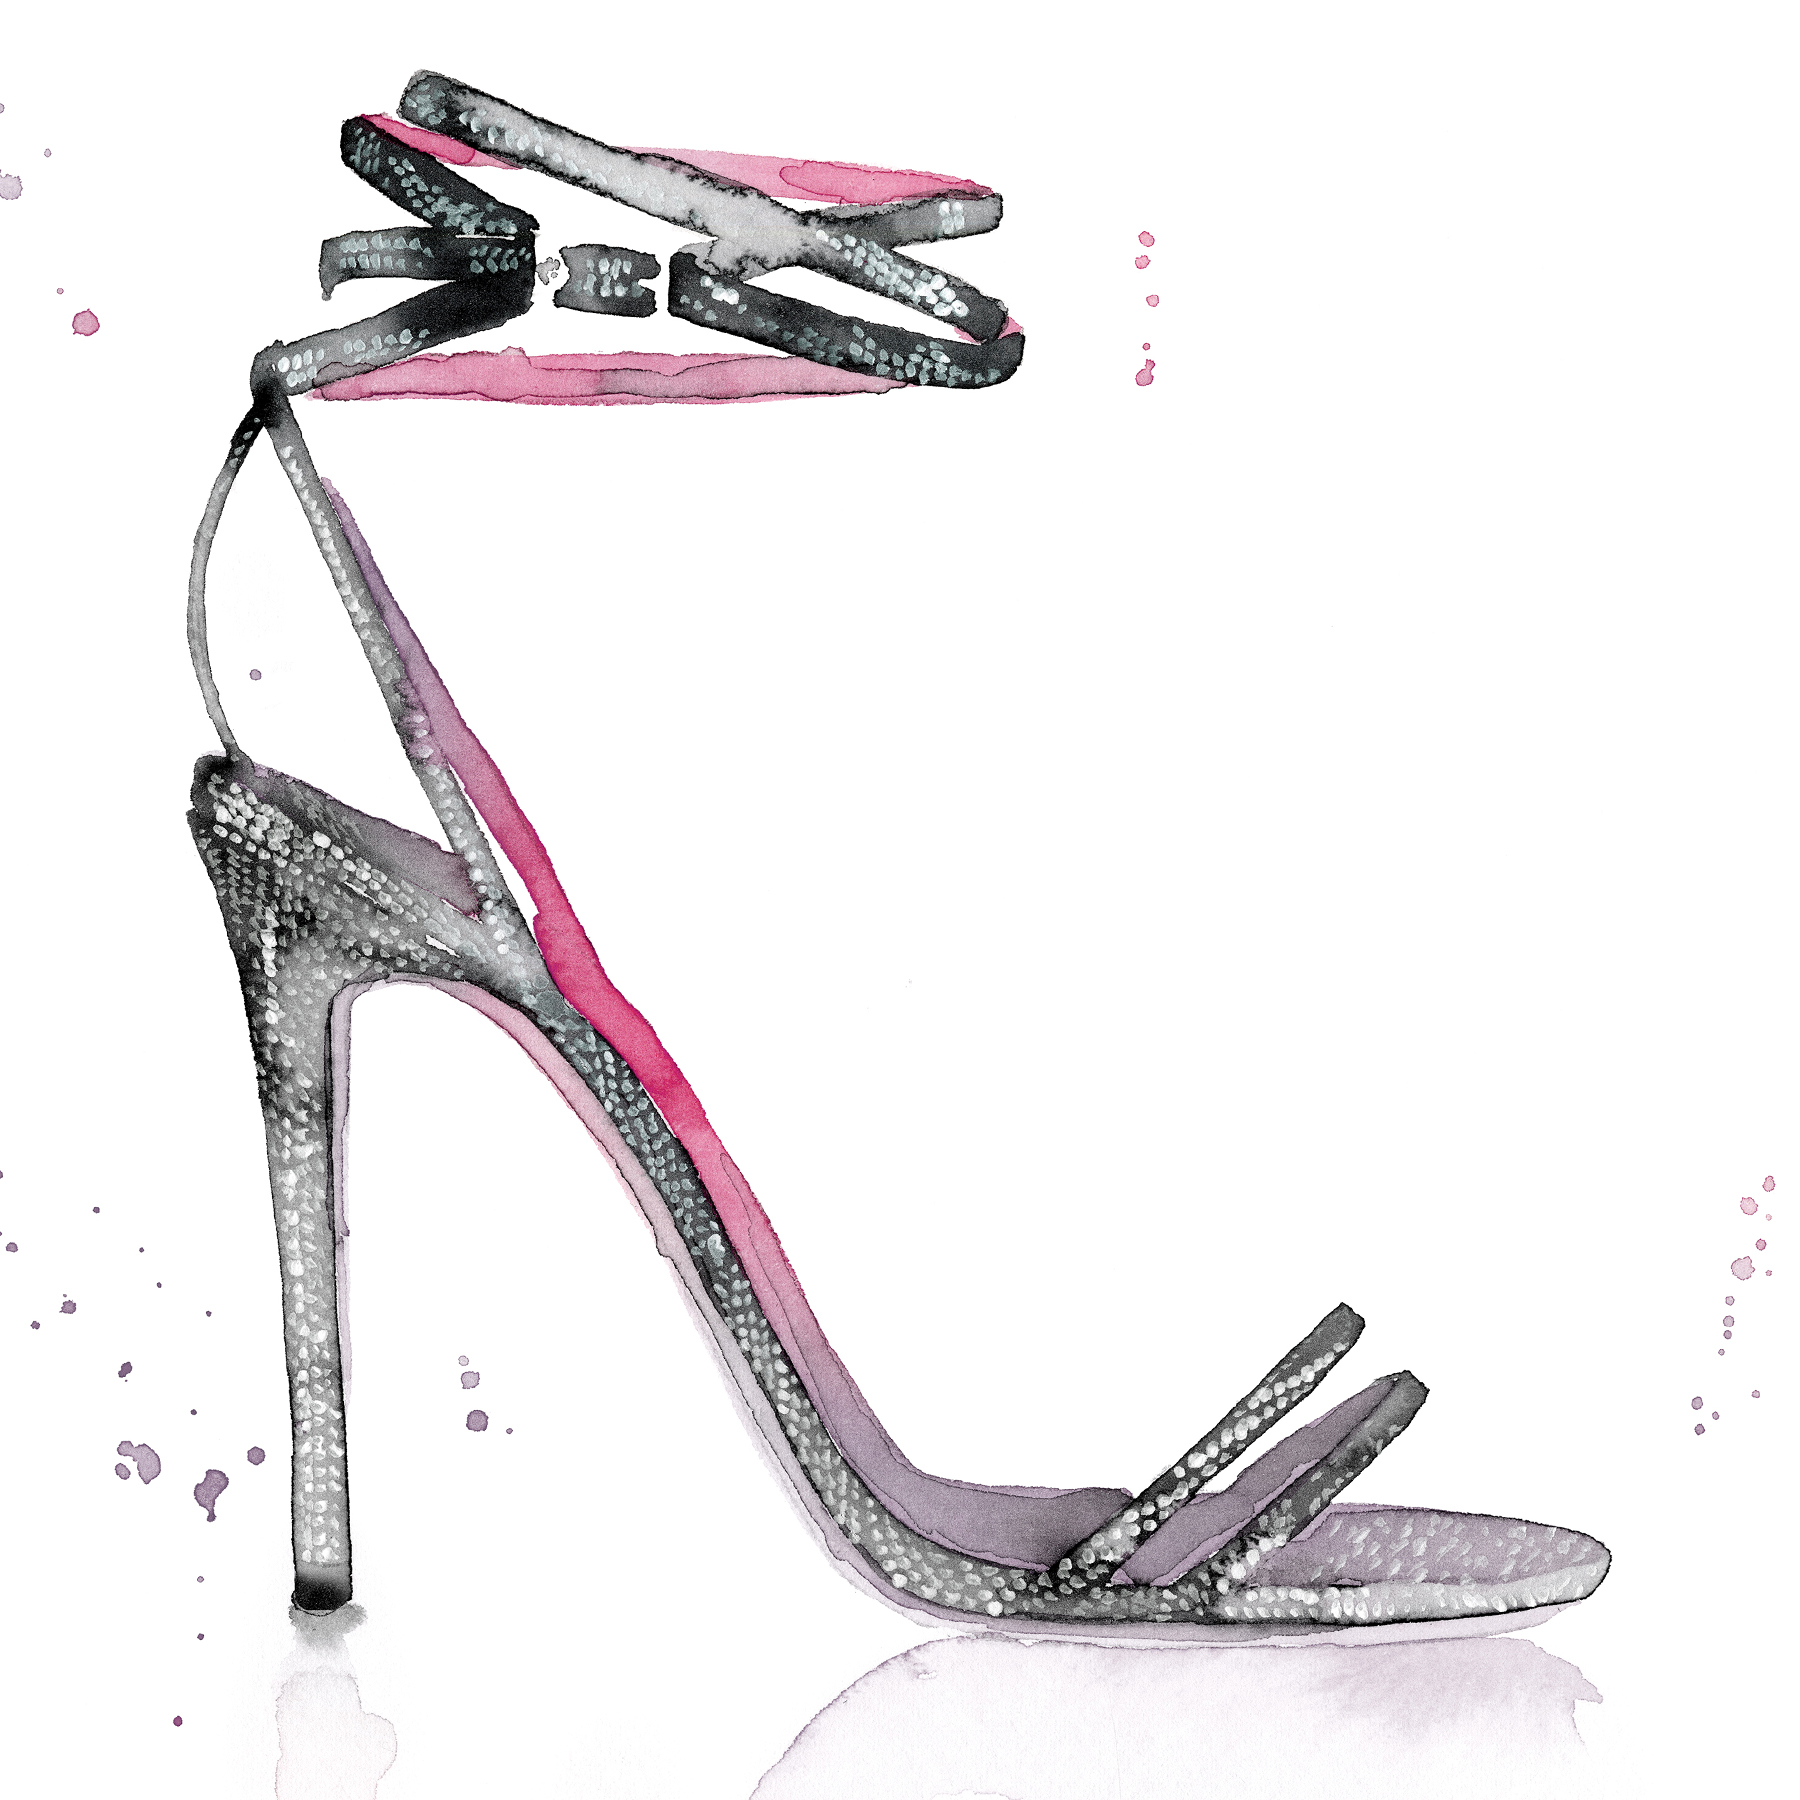 New Release! Memento 20th Anniversary Collection Launch @ Jimmy Choo